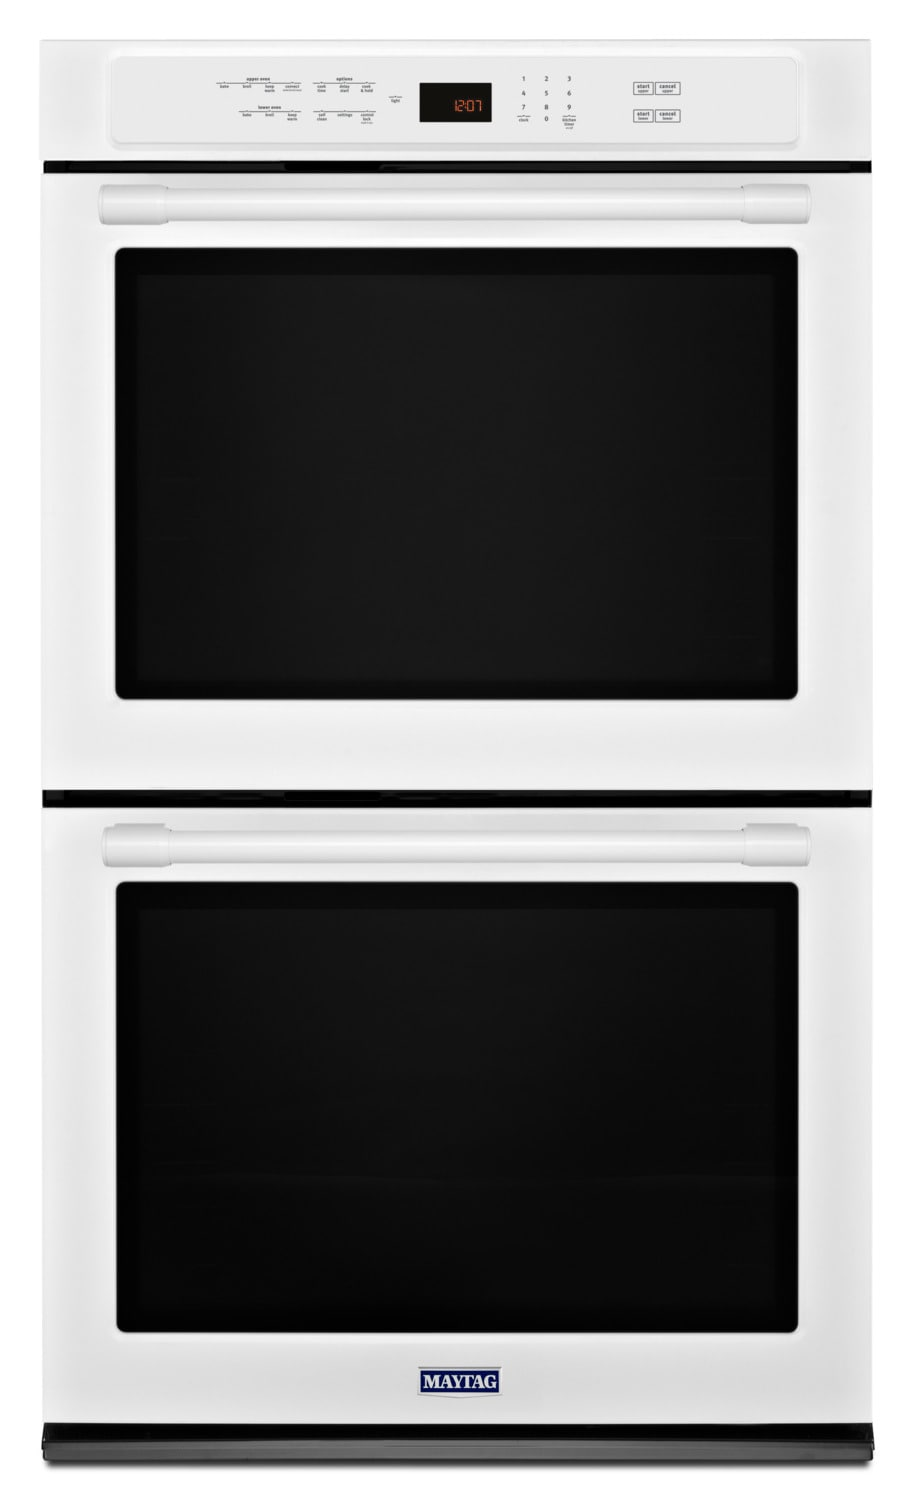 Maytag 10 Cu. Ft. Double Wall Oven – MEW9627FW